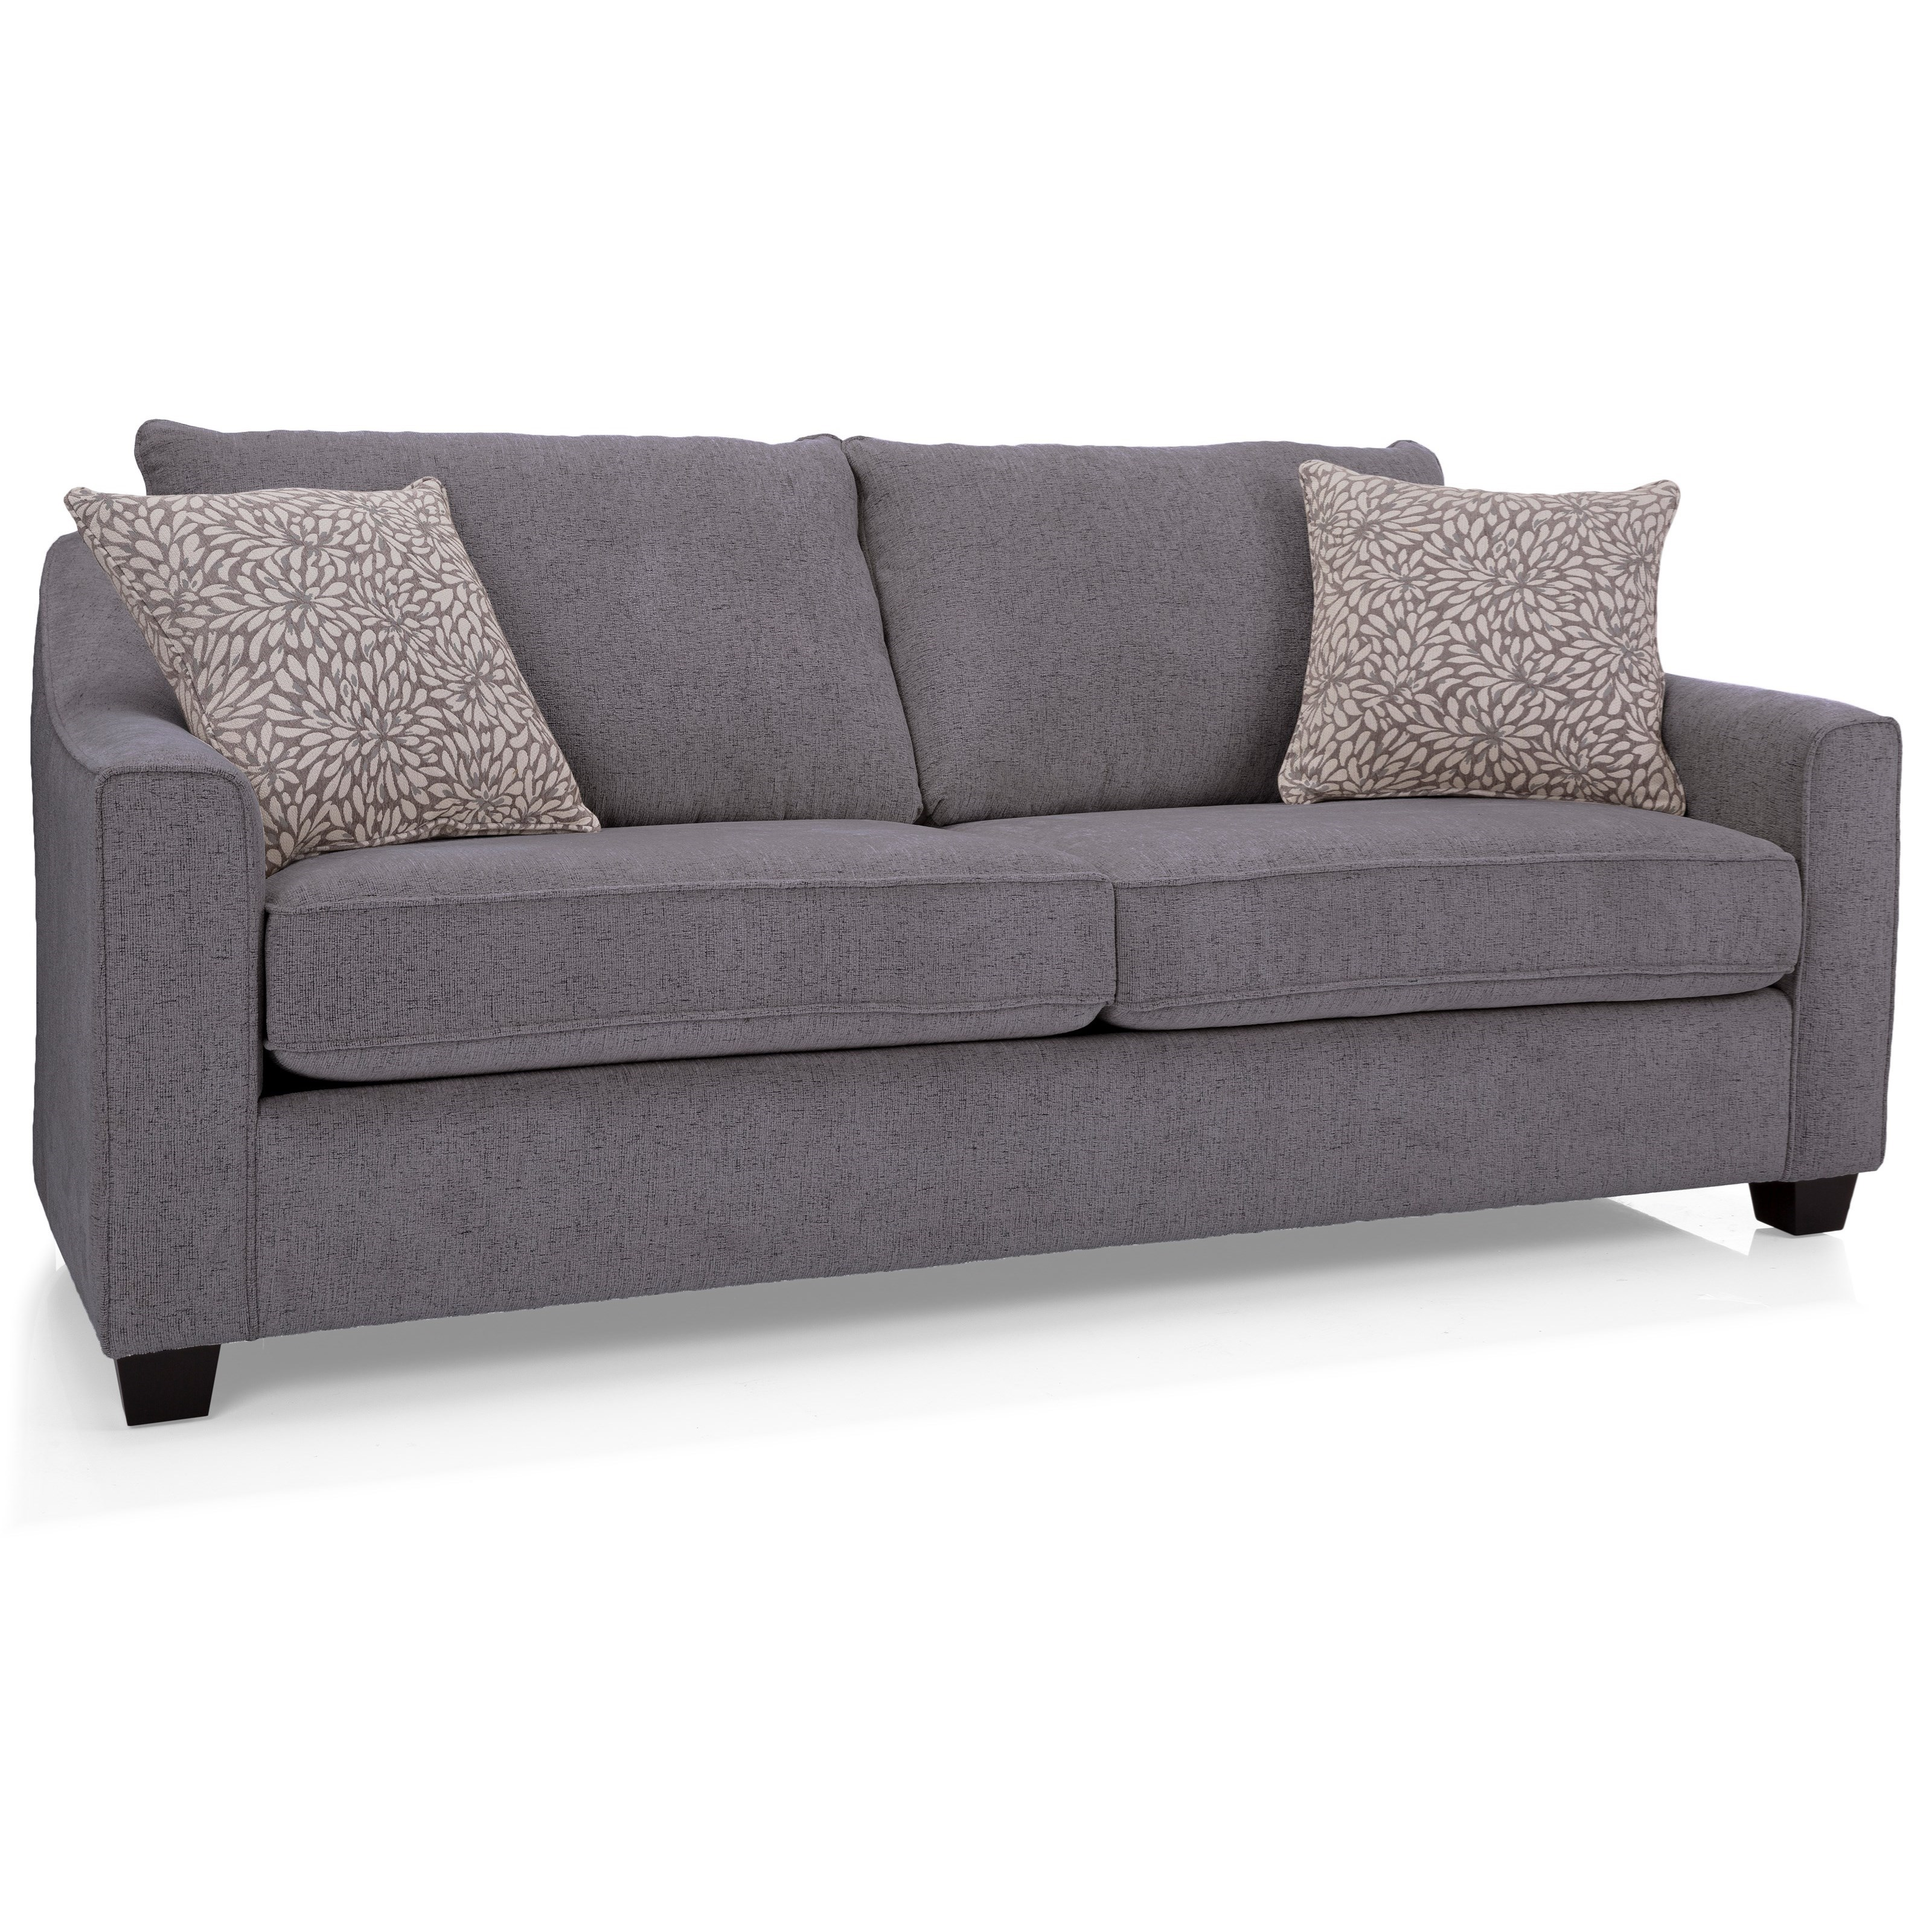 2981 Sofa by Decor-Rest at Reid's Furniture